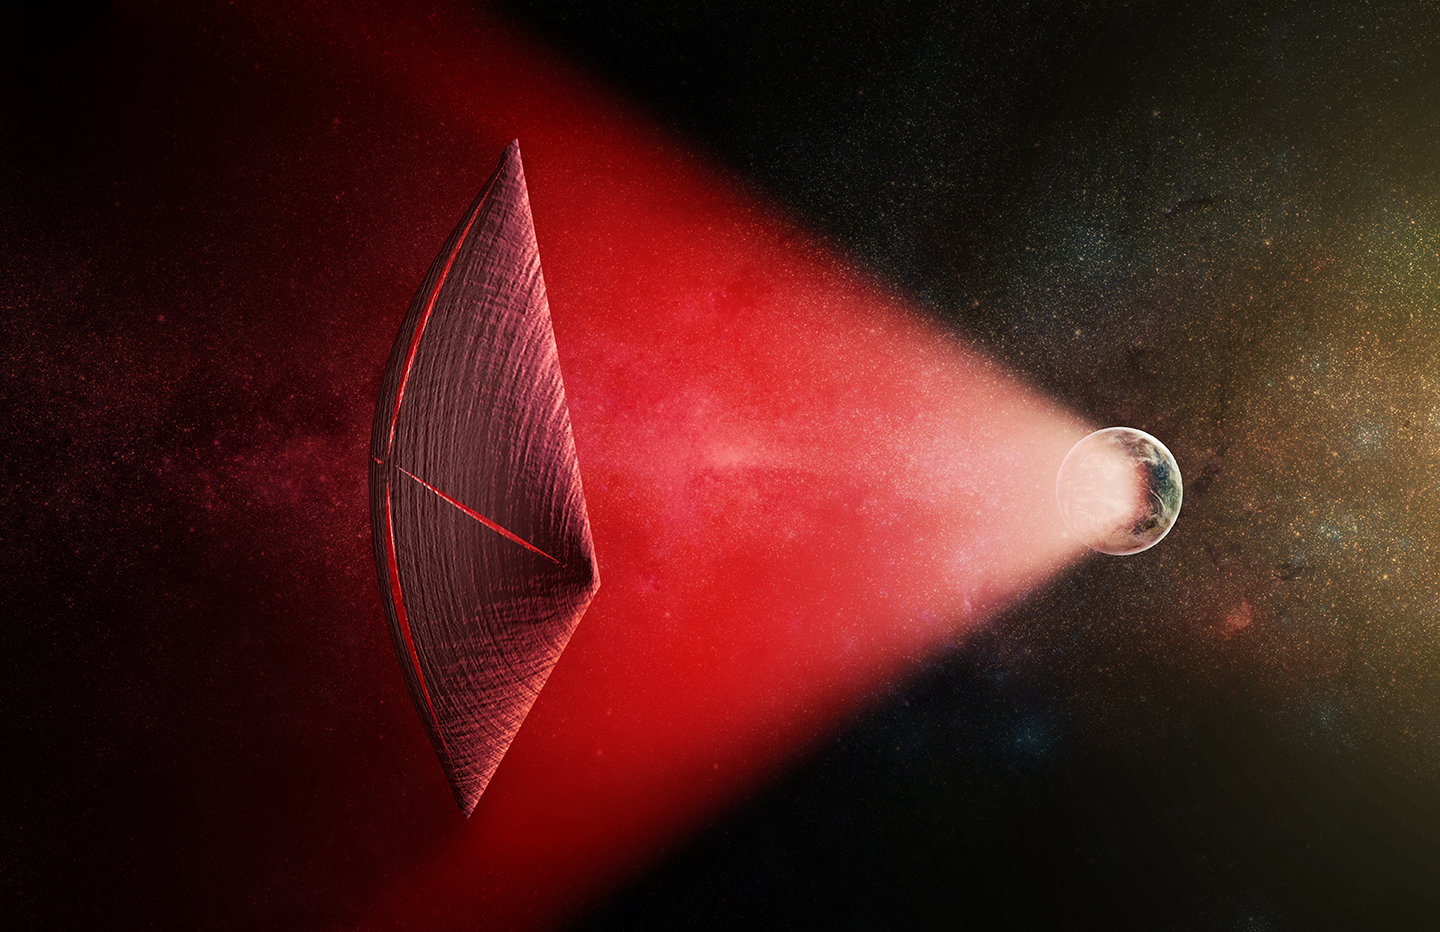 Coming Deception Continues To Be Pushed: Mysterious Radio Bursts Could Be Sign Of Intelligent Life In Space, Say Scientists